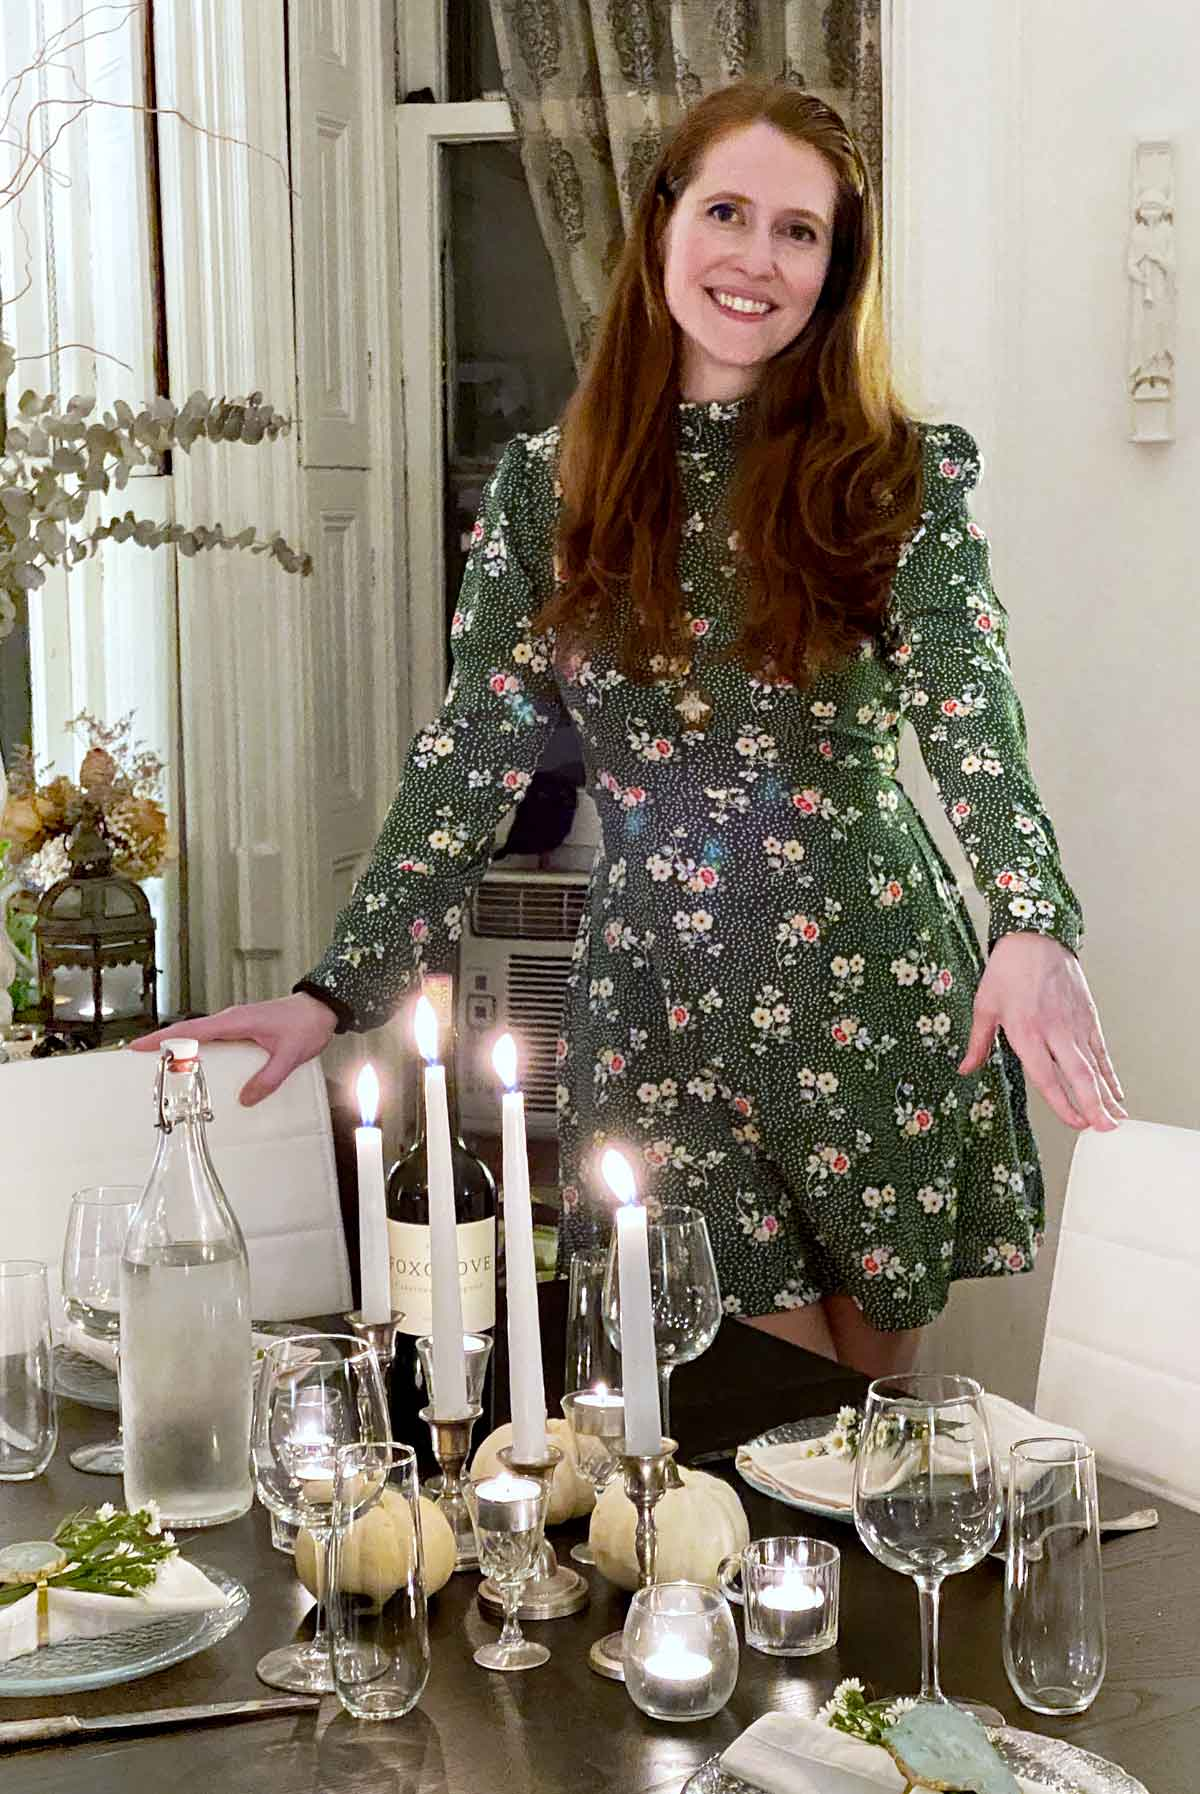 Genevieve Morrison standing at a set dinner table and smiling.